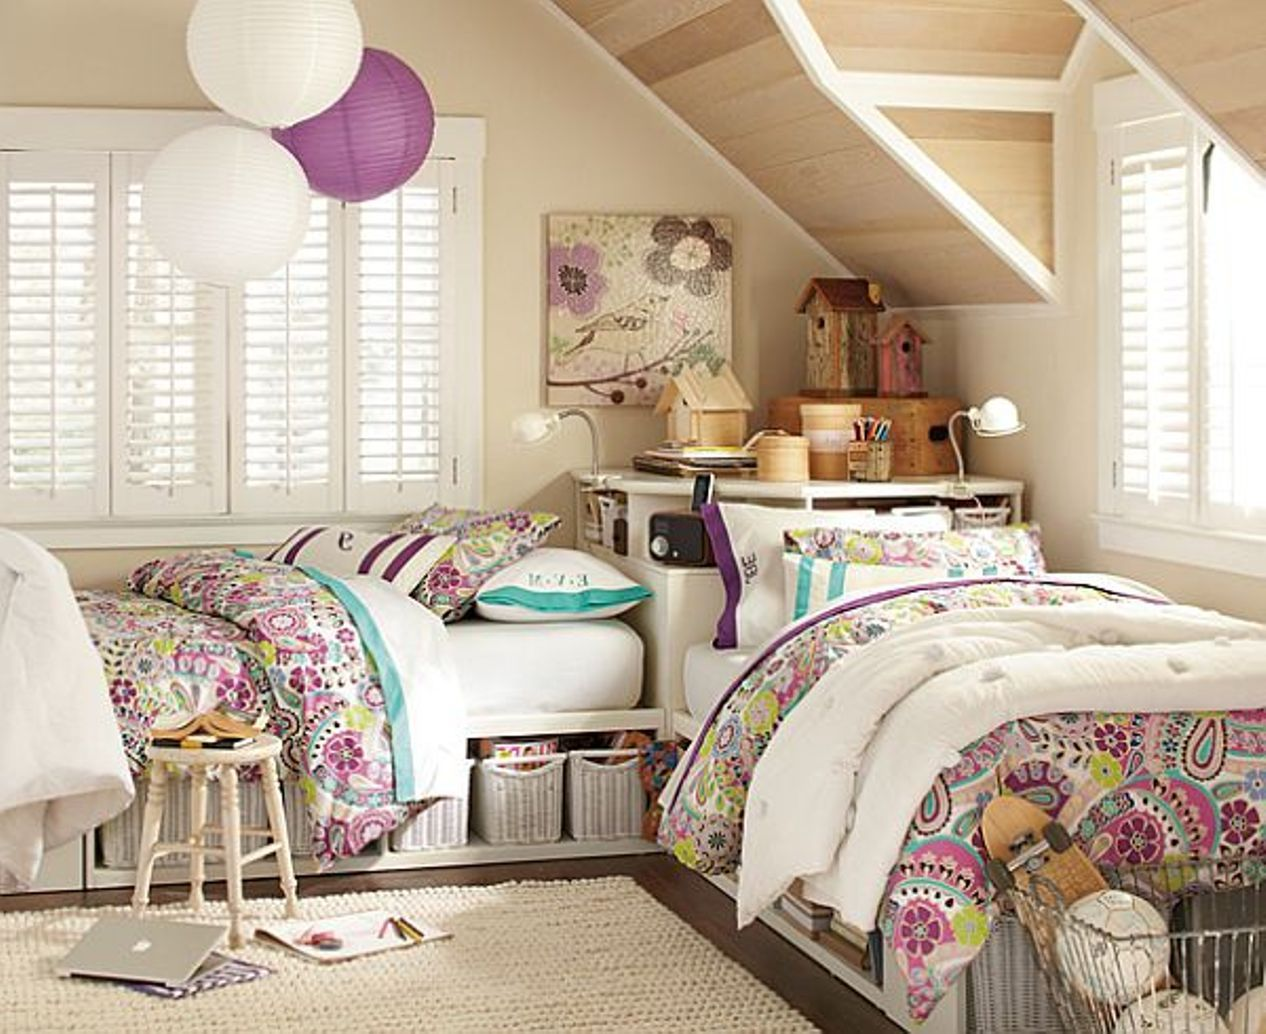 Beds For Attic Rooms bedroom , perfect bedroom for twin girls : attic bedroom for twin